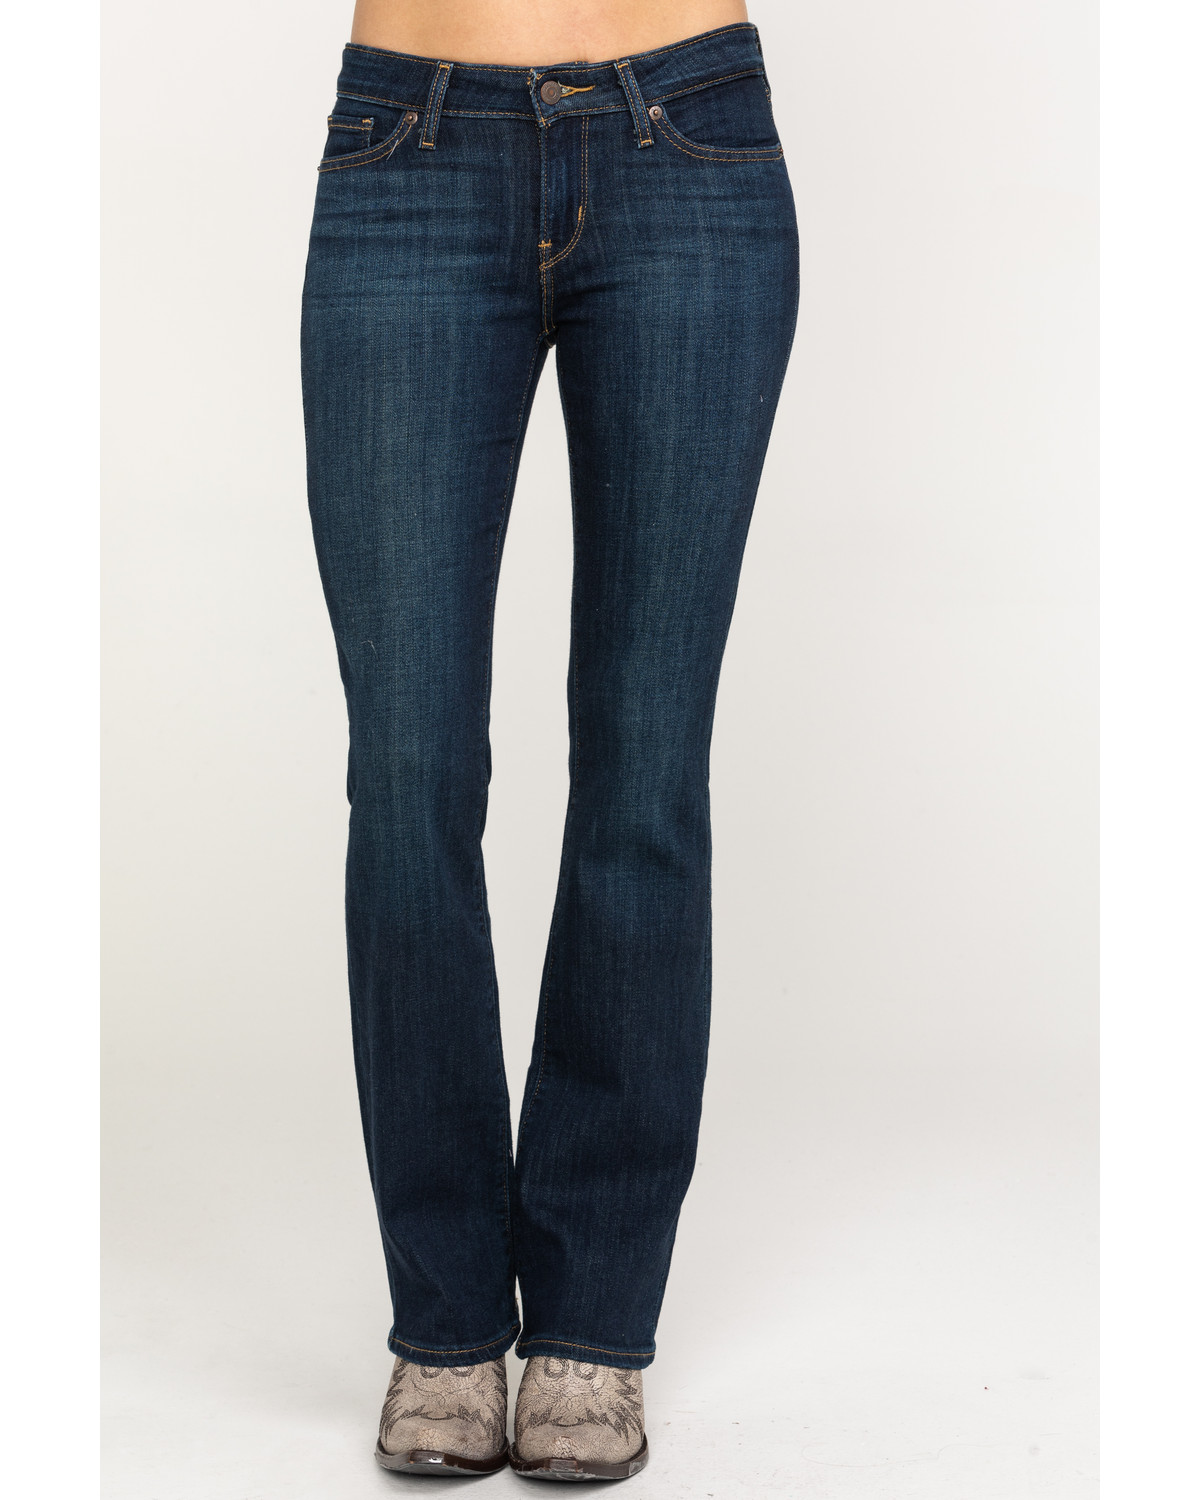 db121988ab8 Levi's Women's 715 Wash Out Vintage Bootcut Jeans - Country Outfitter